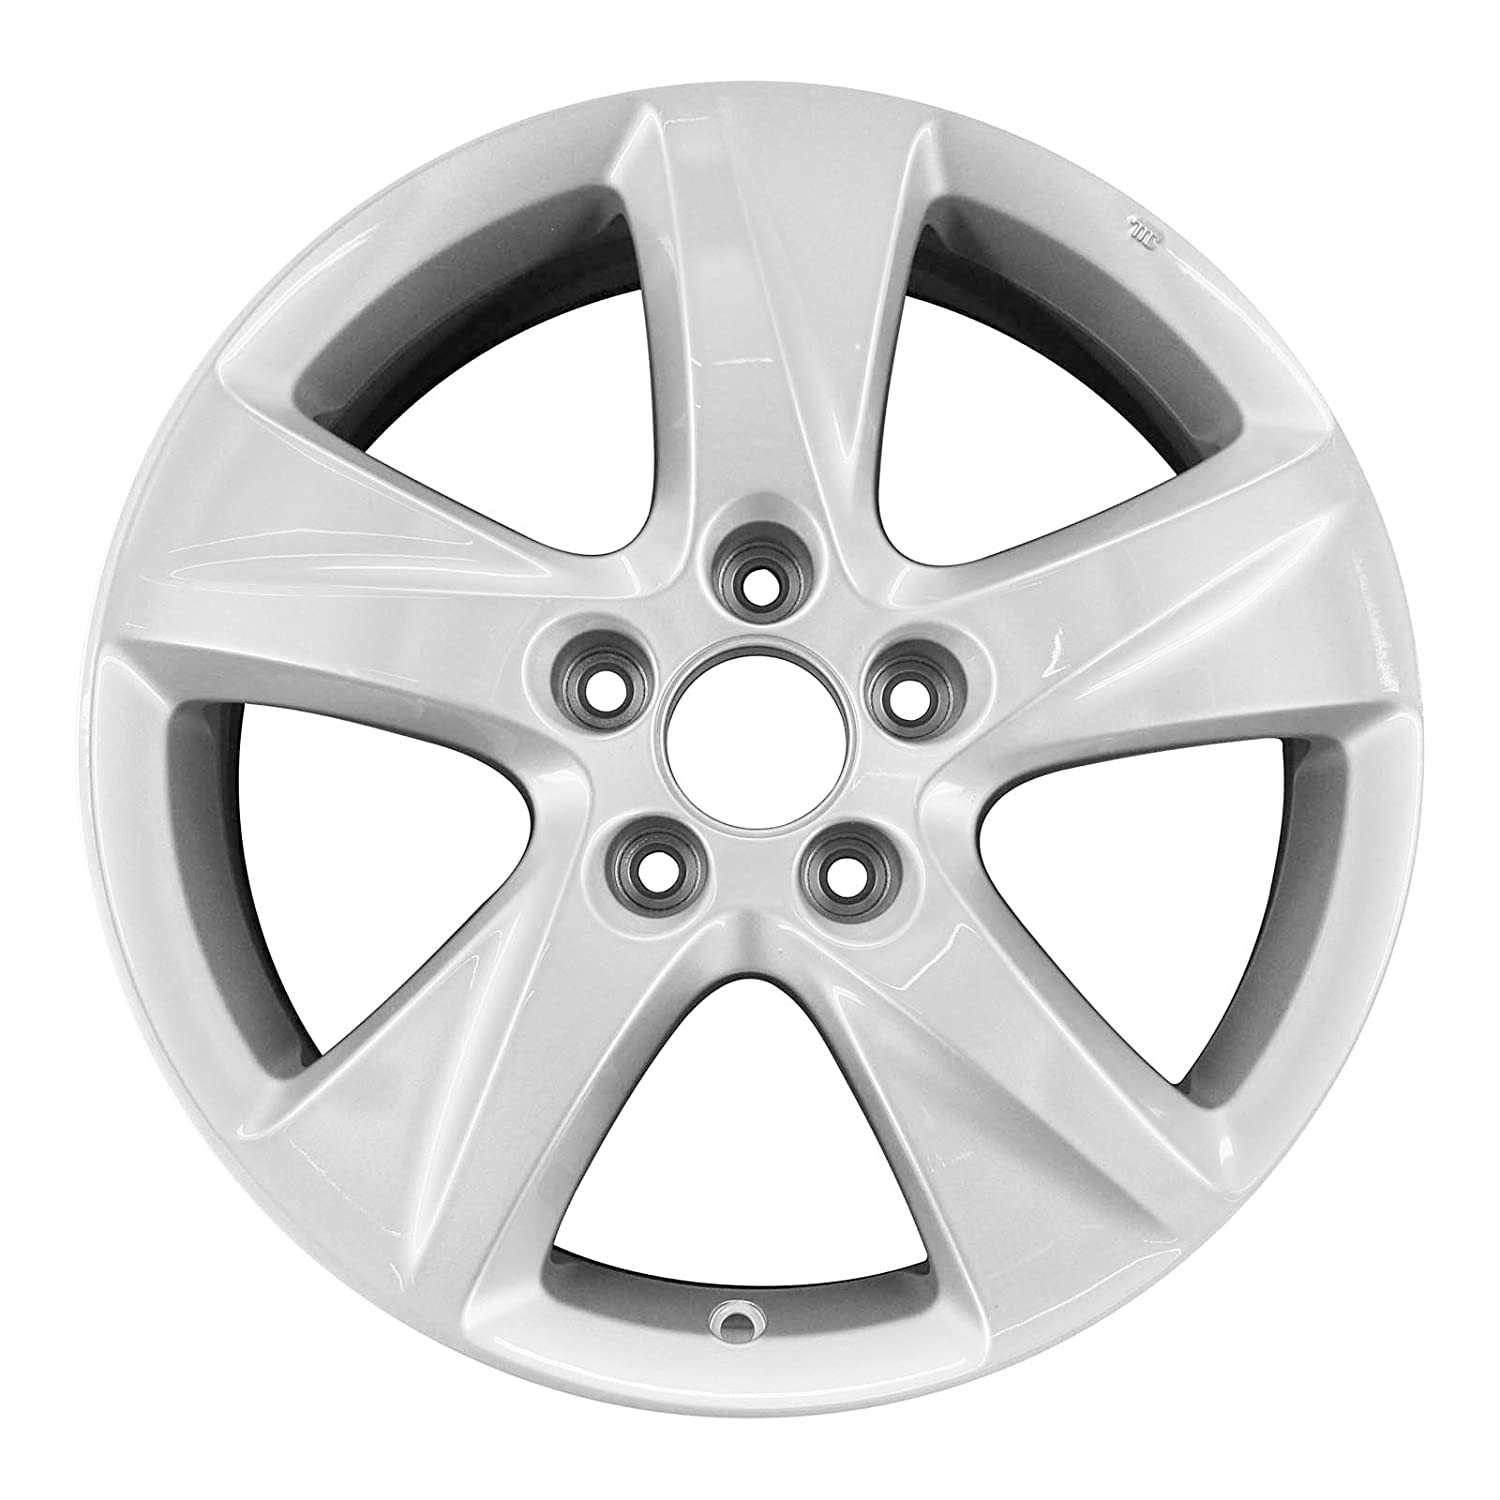 "new 17"" replacement rim for acura tsx 2009 2014 wheel"